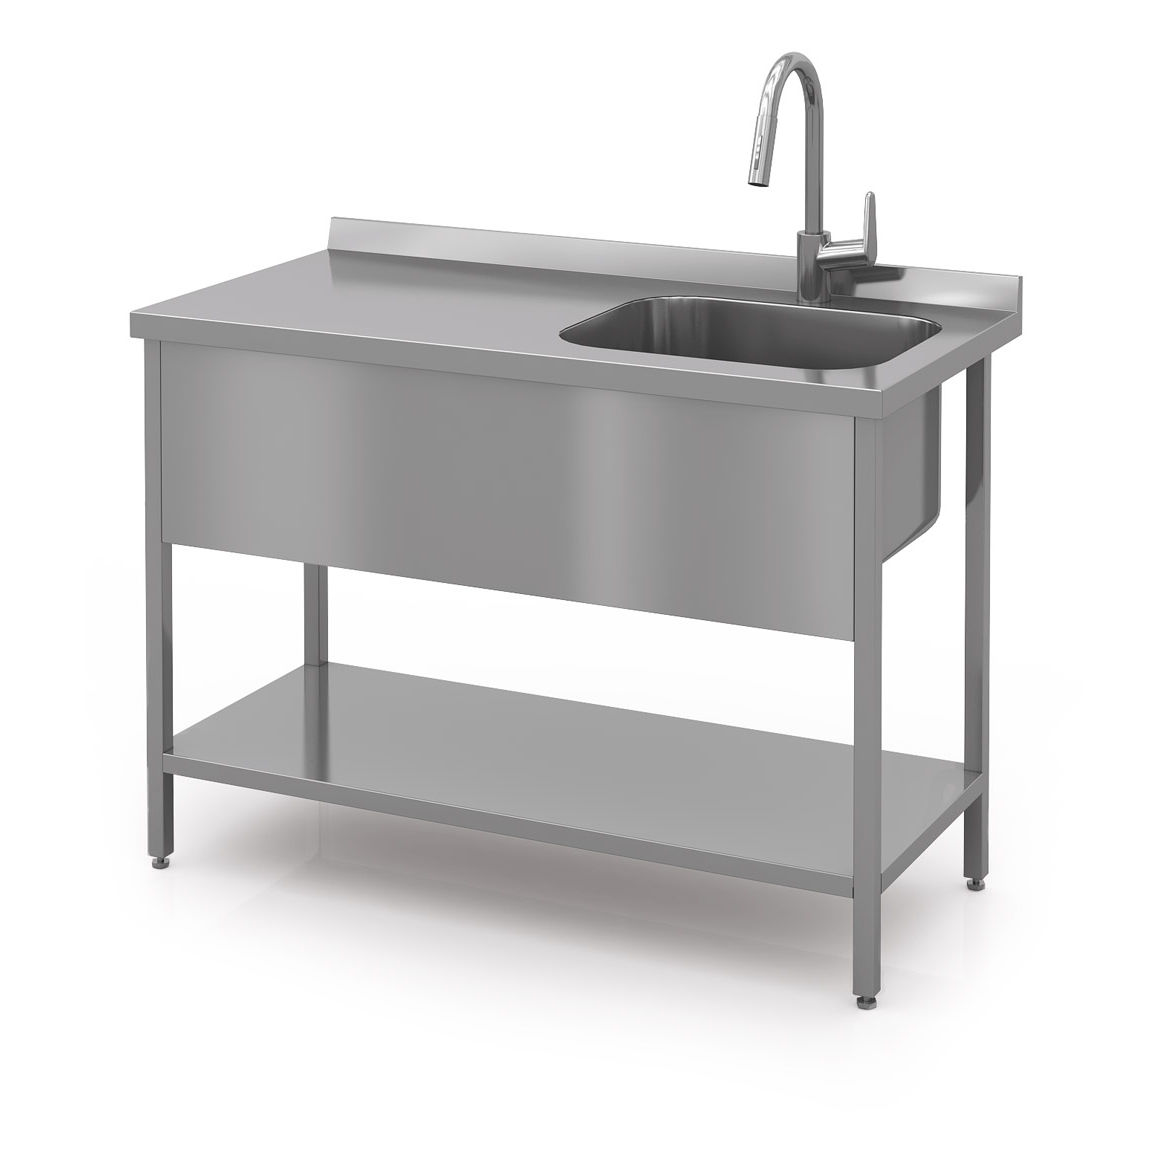 Stainless Steel Prep Table Modern Expo With Sink Commercial